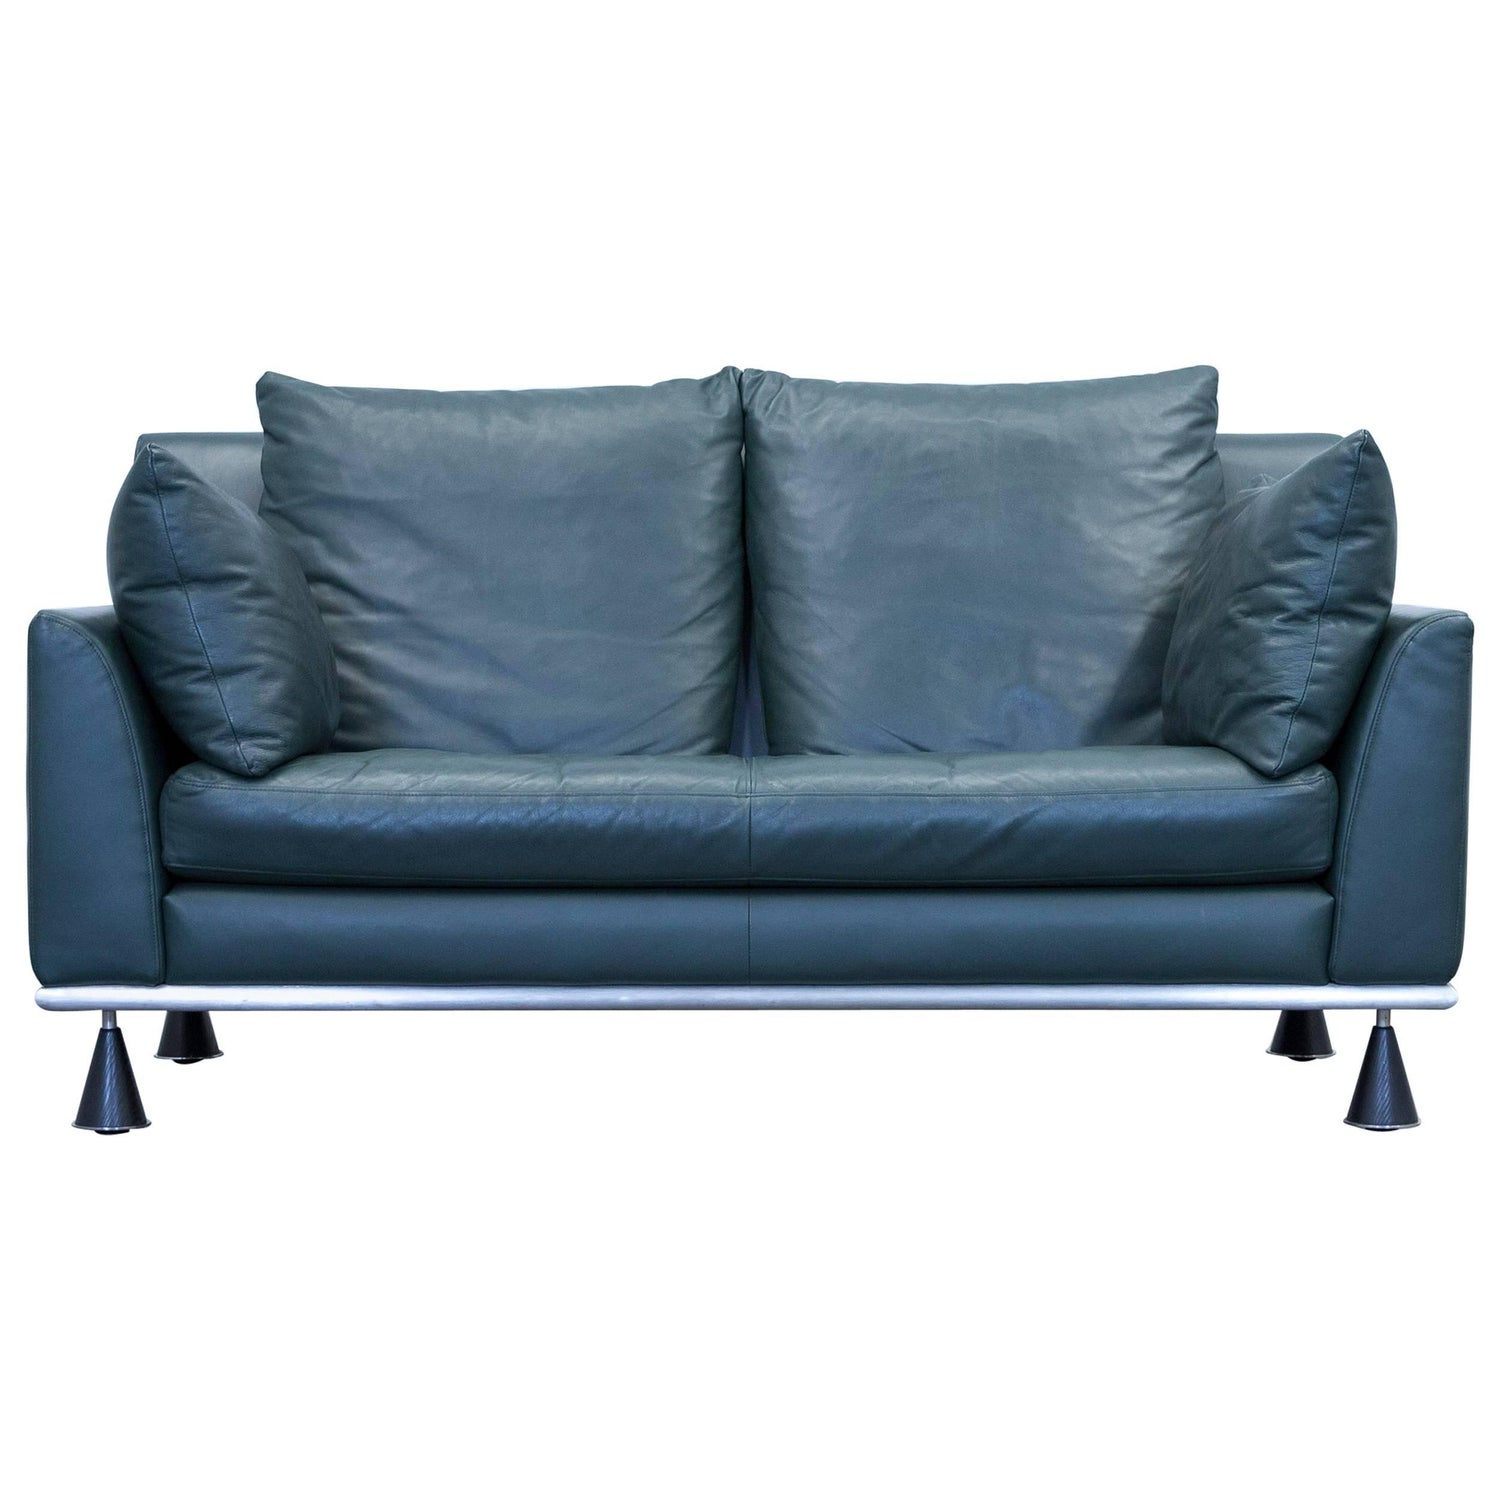 Rolf Benz Designer Sofa Leather Green Two Seat Couch Modern at 1stdibs